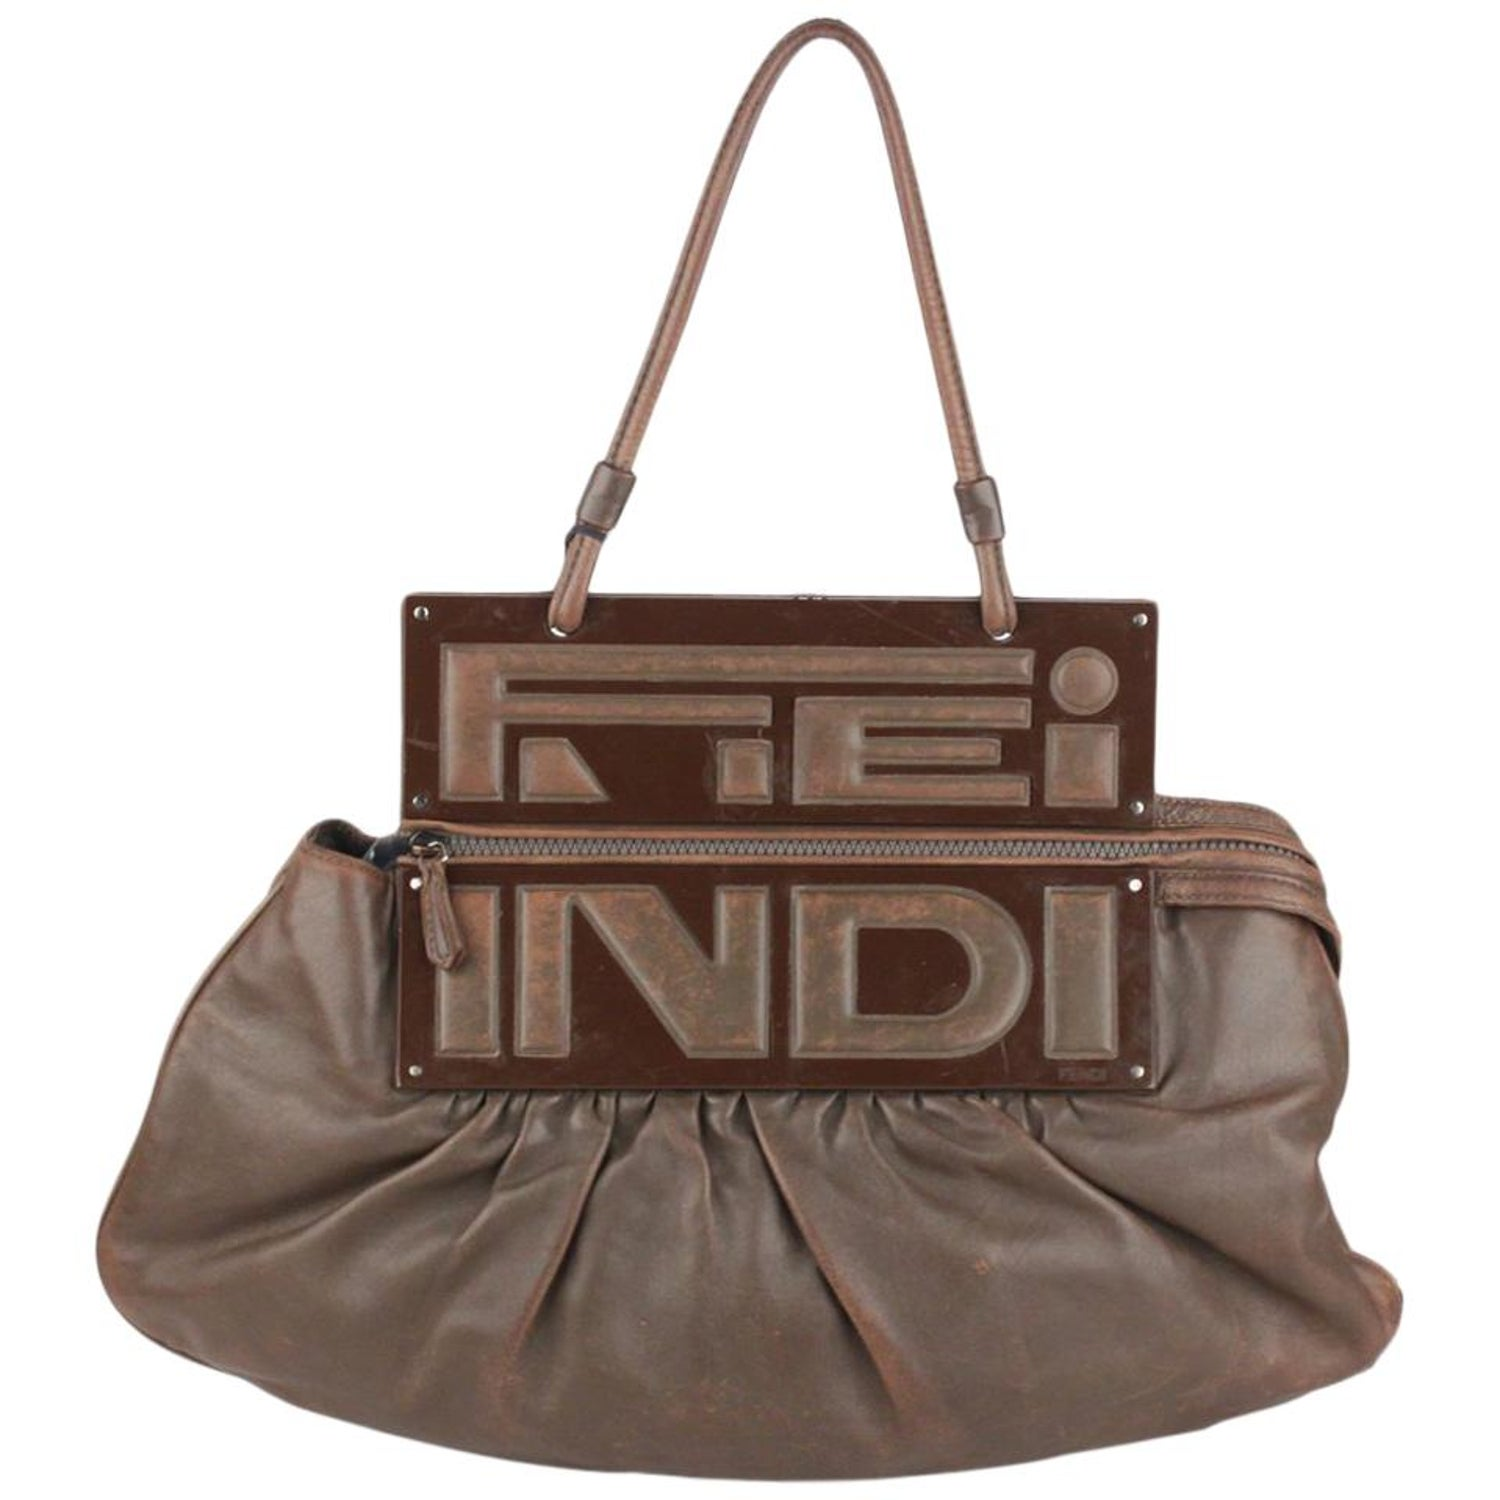 7924d62fa1 Fendi Brown Leather Convertible To You Clutch Bag Tote For Sale at 1stdibs